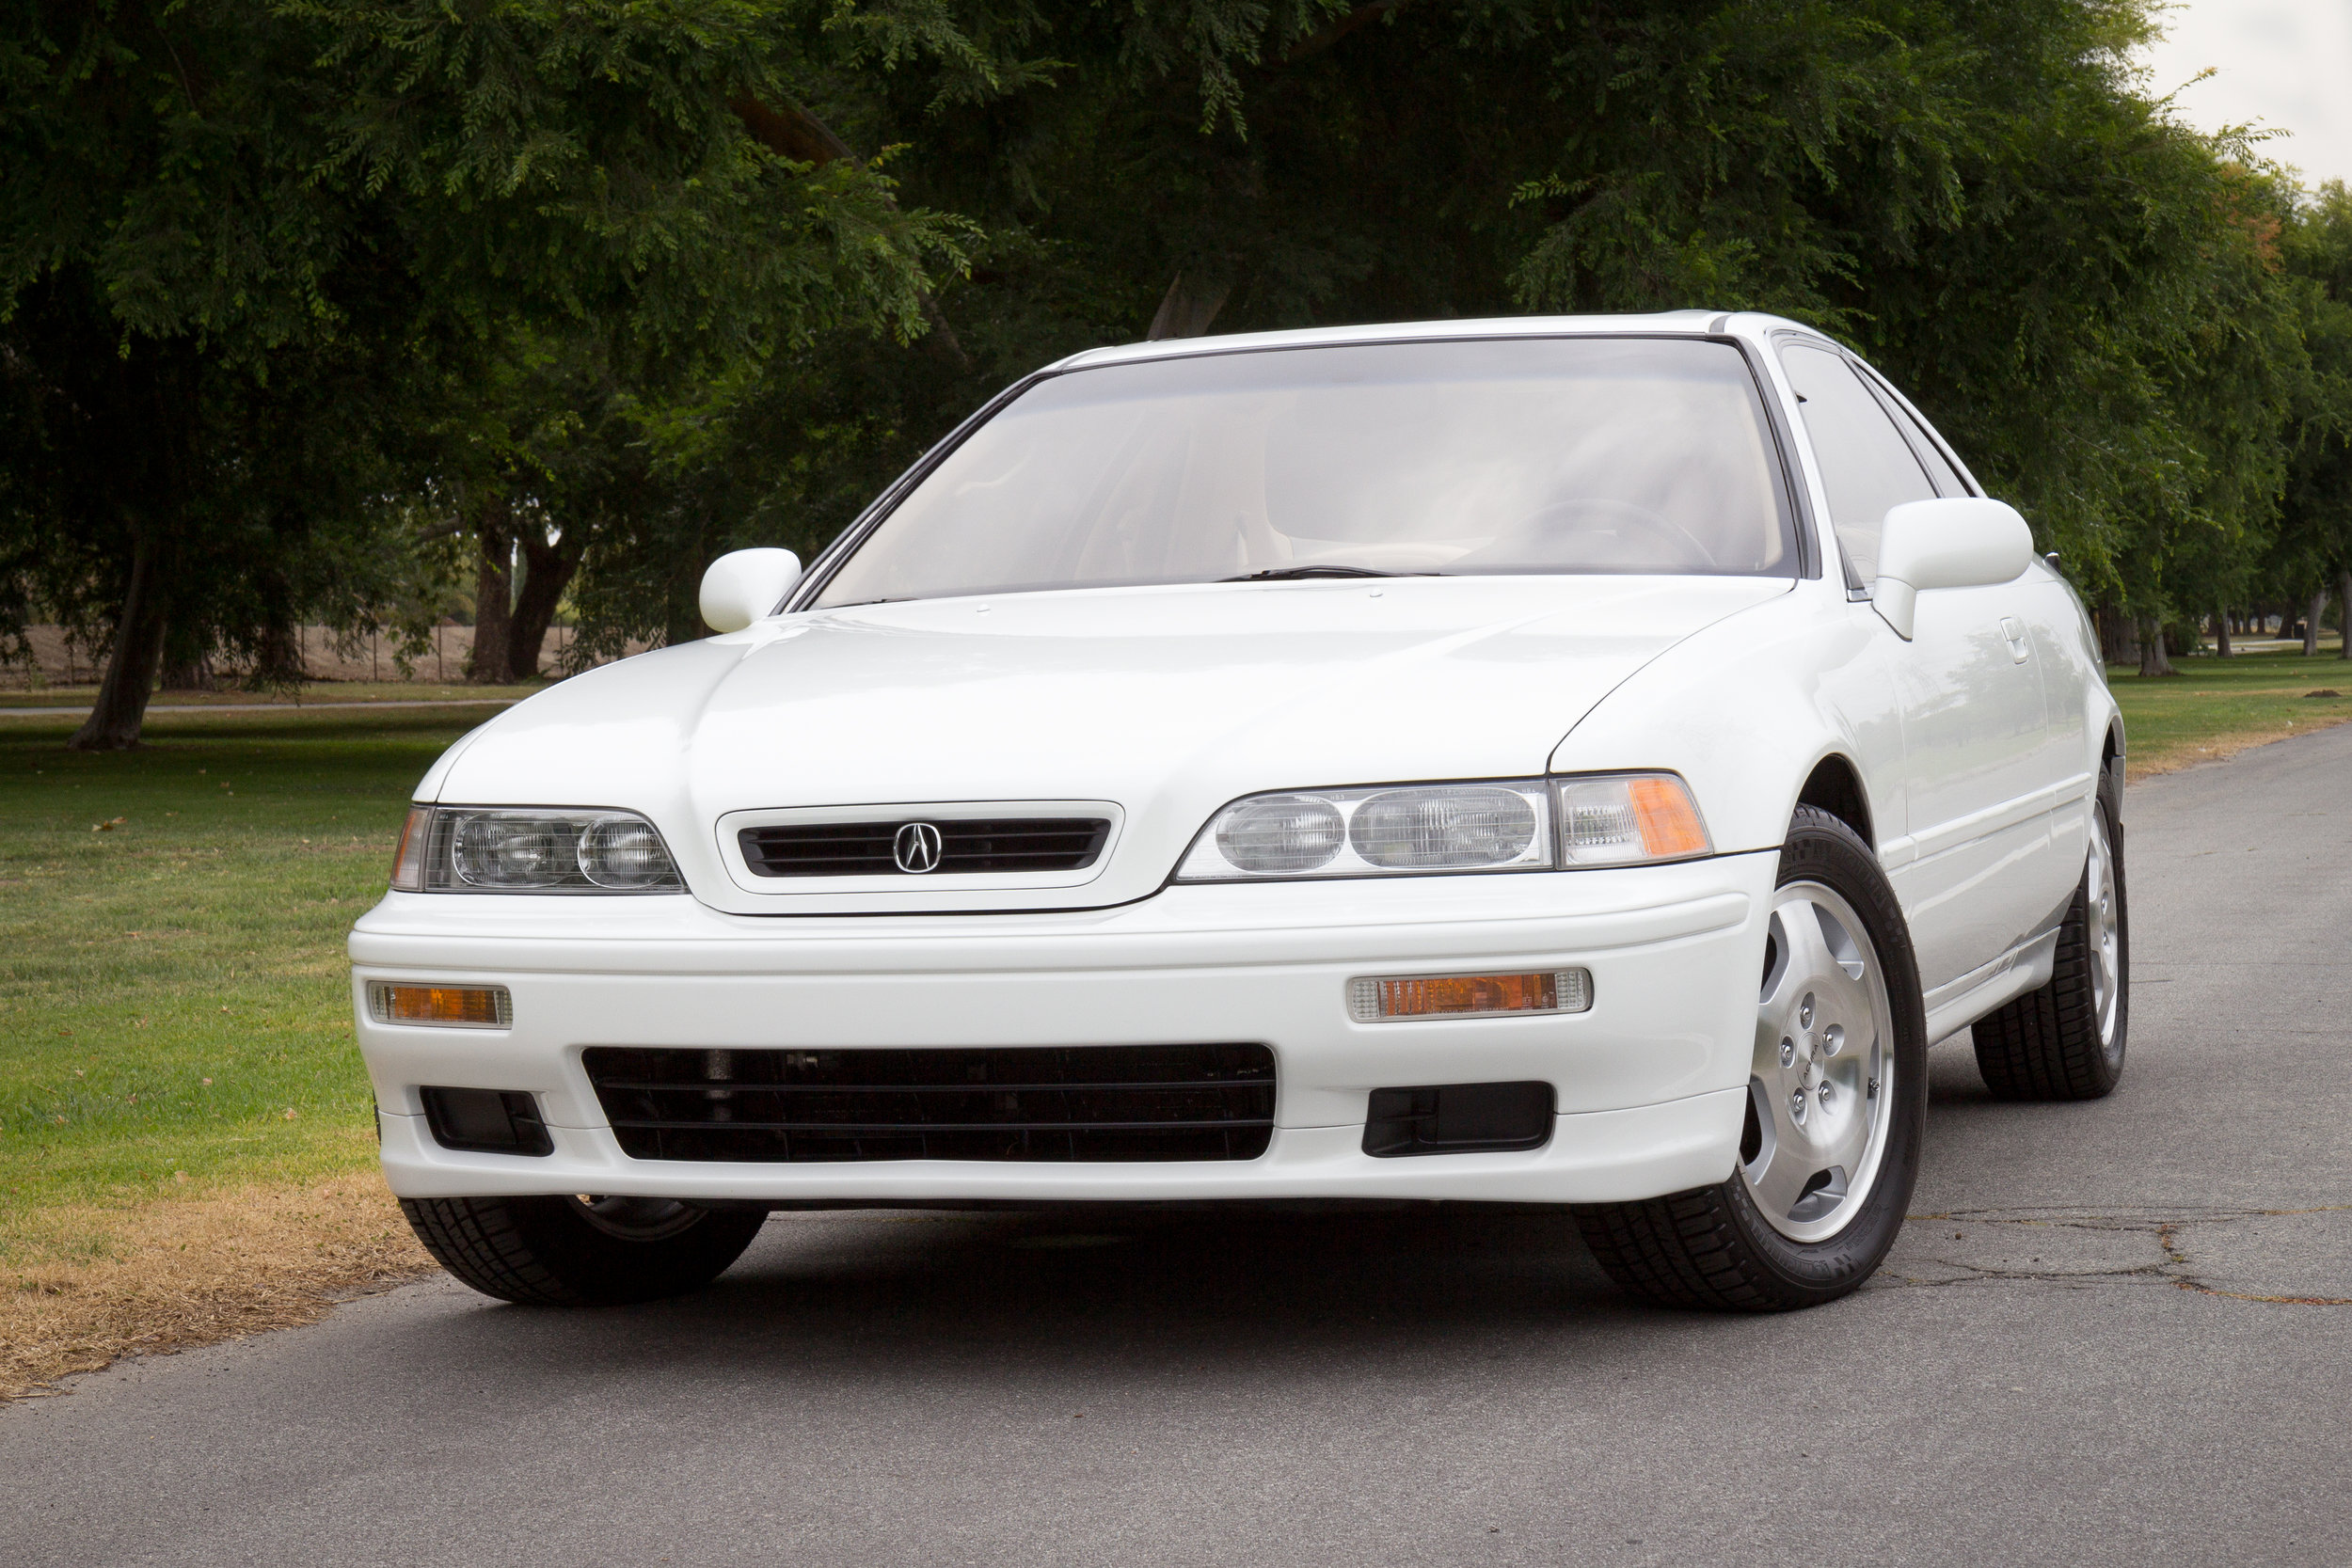 1994 Acura Legend Coupe-103.JPG